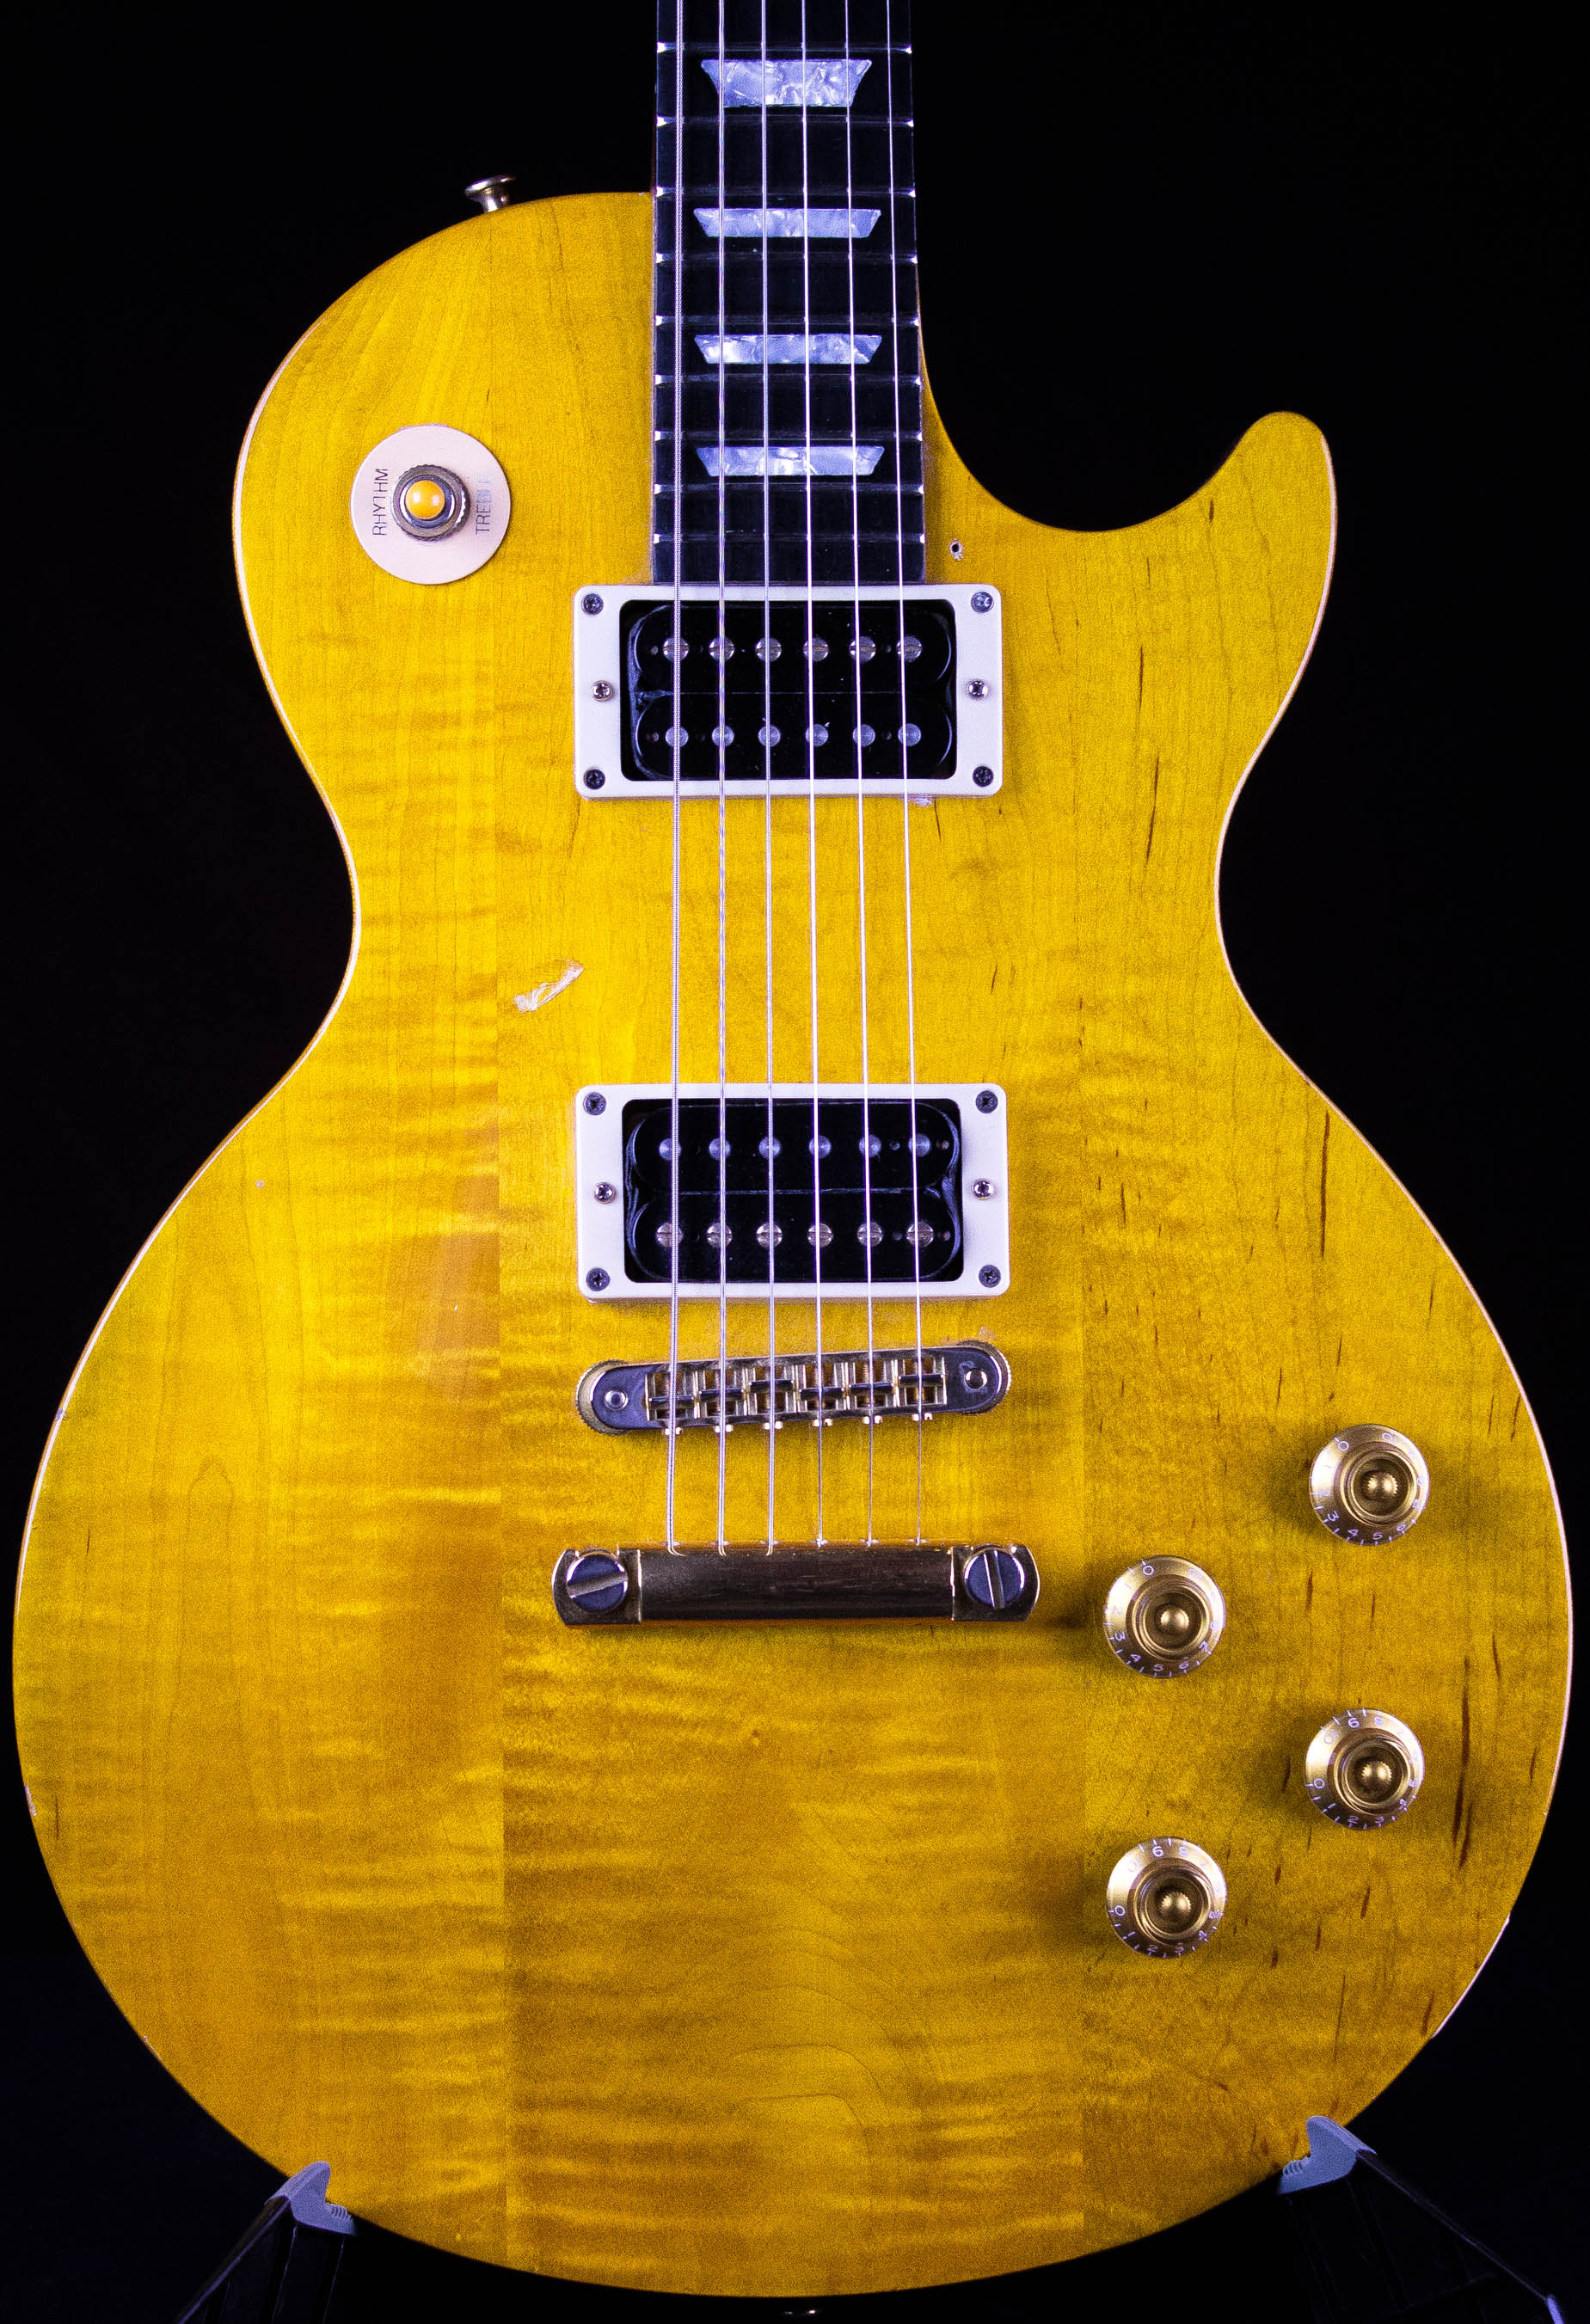 1992 gibson les paul studio lite trans amber guitar grlc1524 ebay. Black Bedroom Furniture Sets. Home Design Ideas